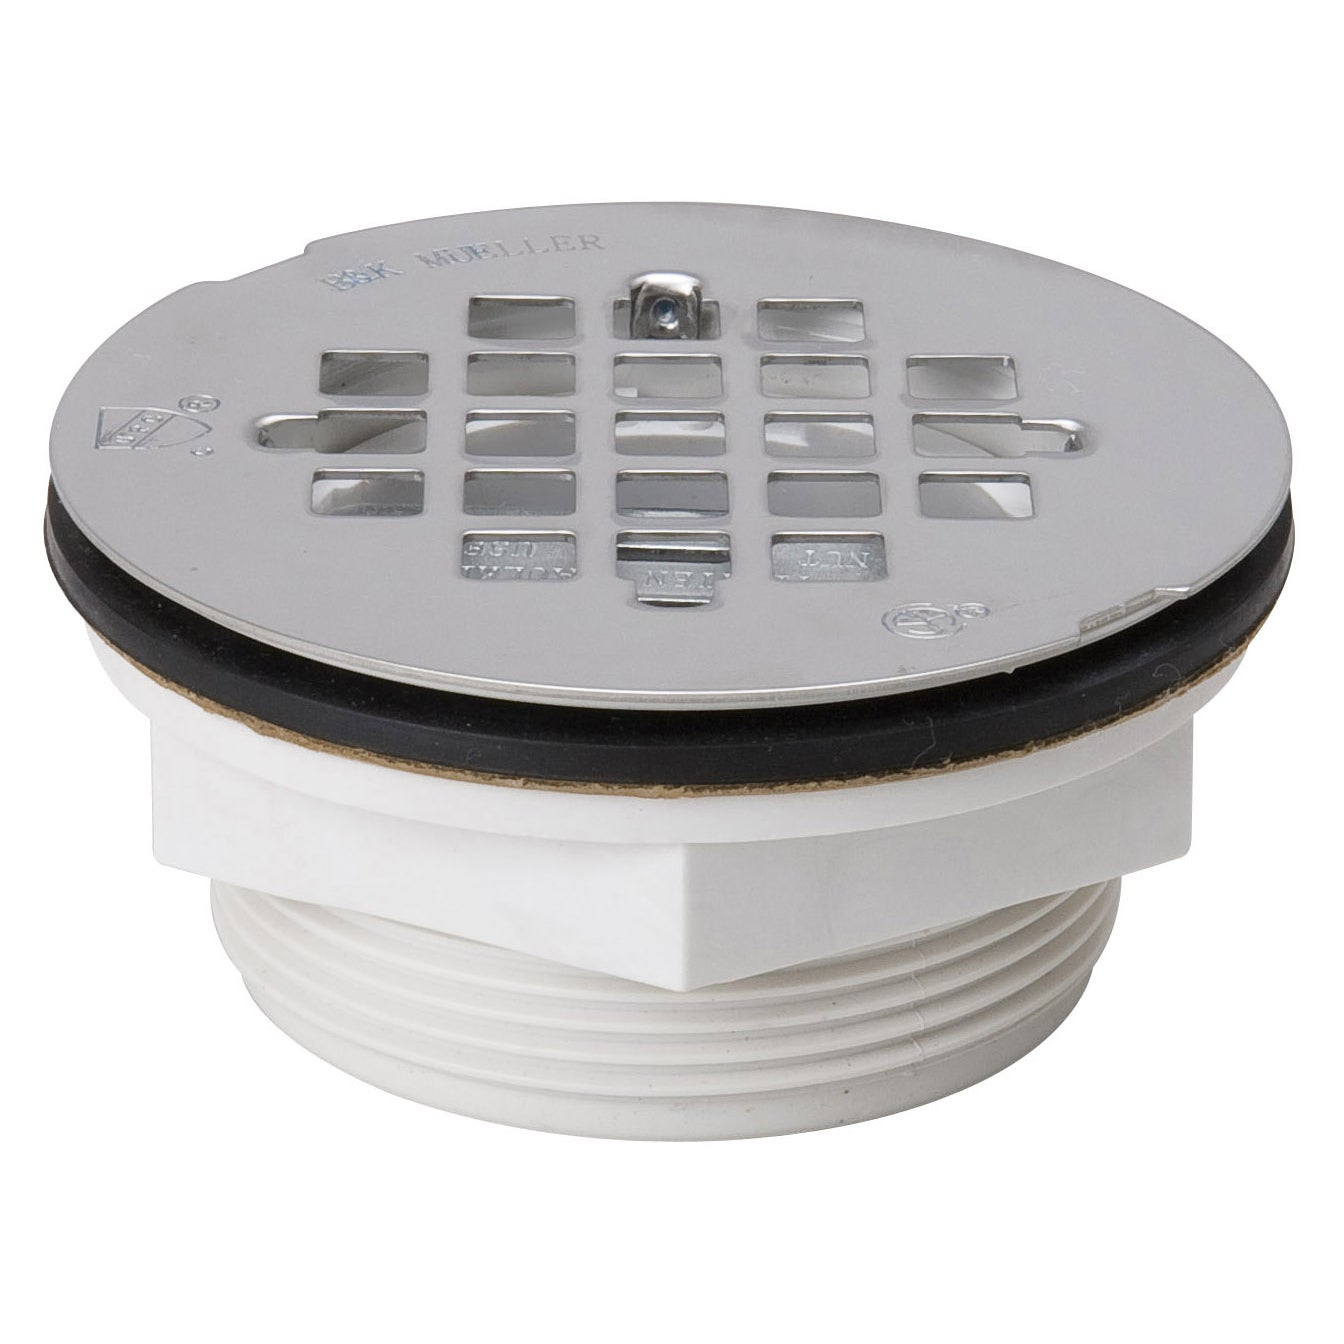 B And K Industries 133-102 Quick Caulking Shower Drains (...